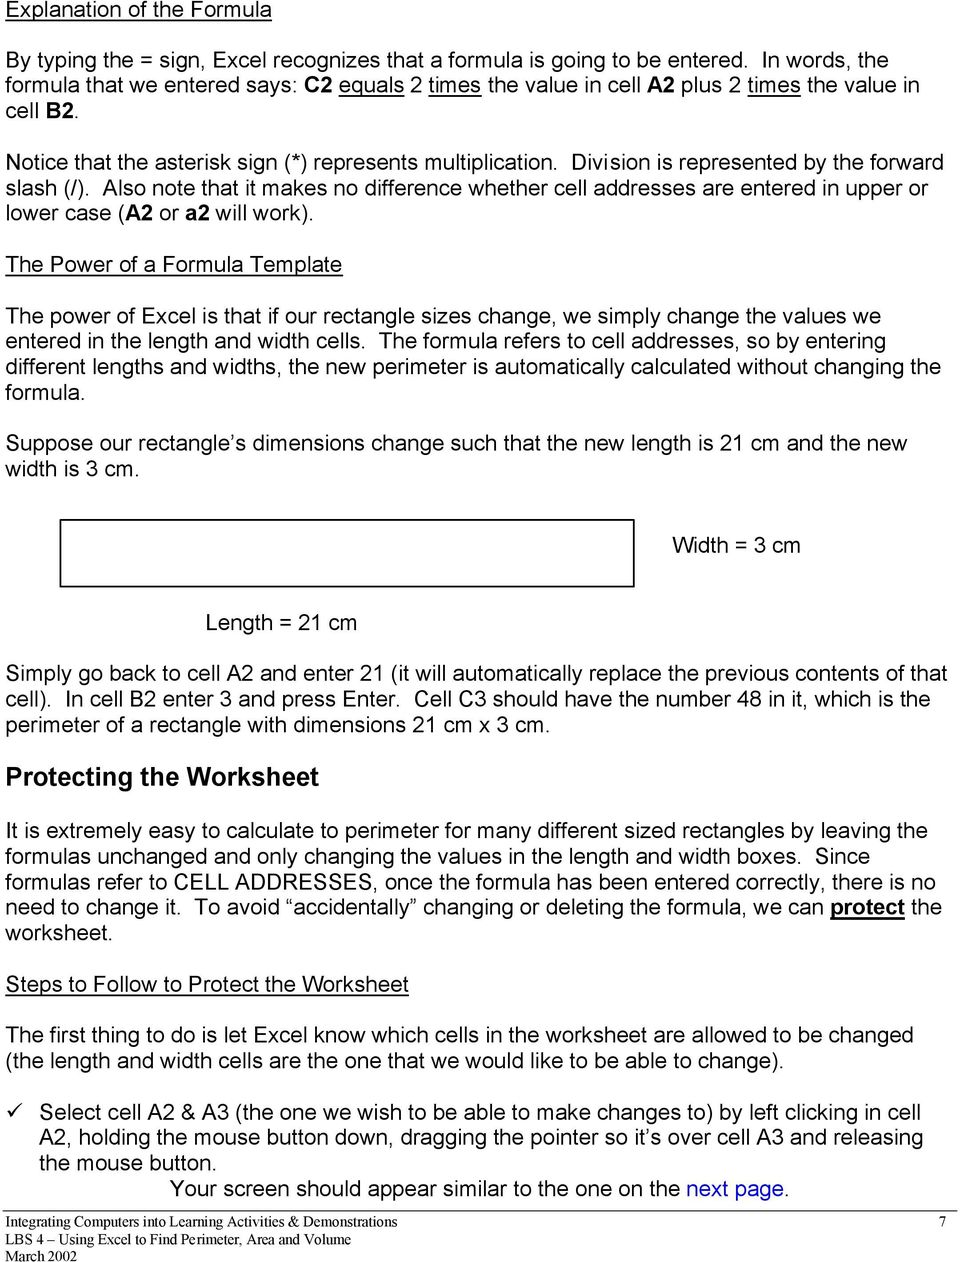 Work Energy And Power Worksheet Answer Key Free Worksheets Library – Work Worksheet